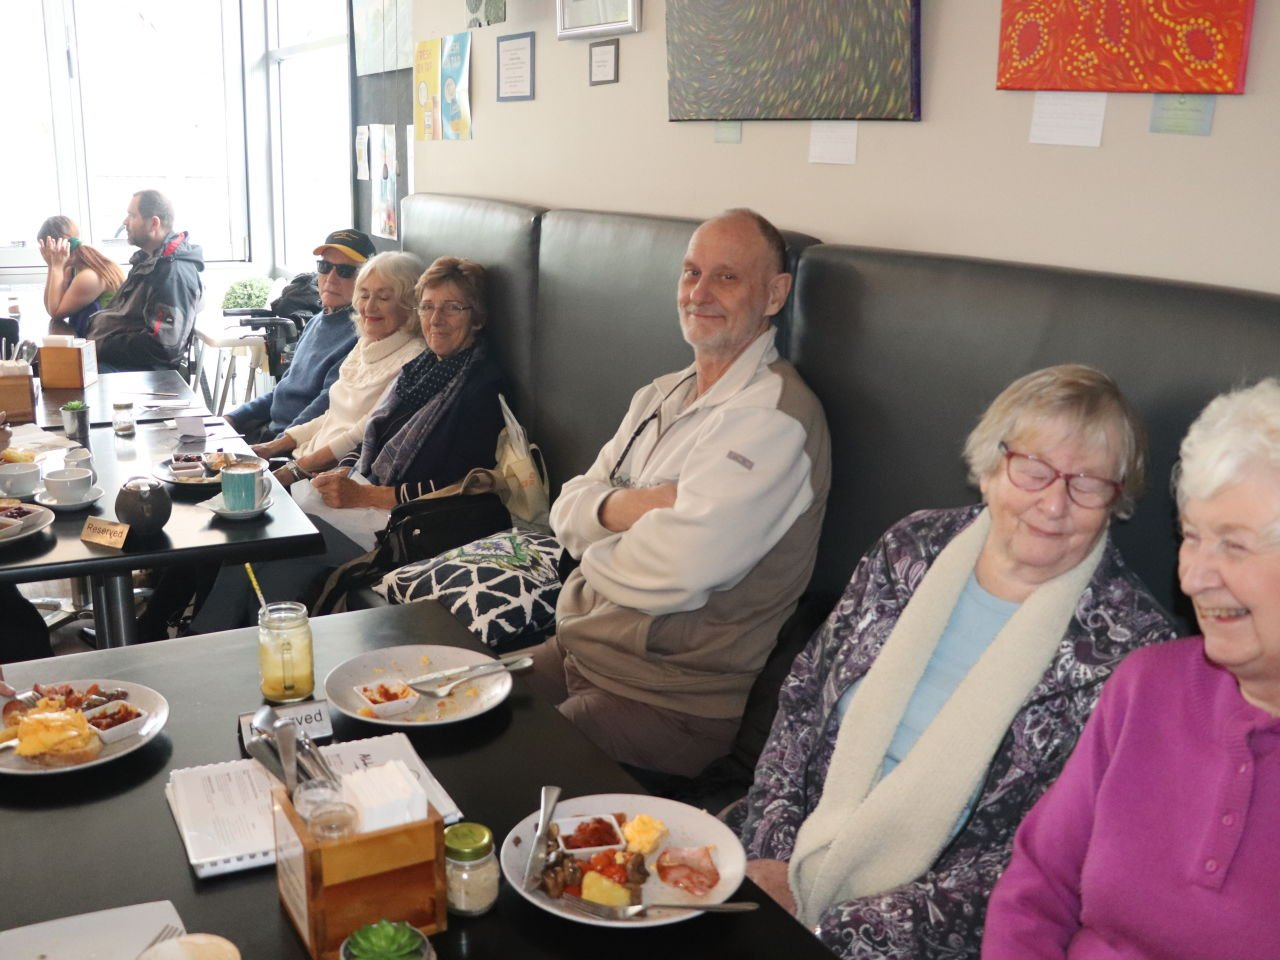 22nd of June 2019 Breakfast at the Hummingbird Cafe Mandurah